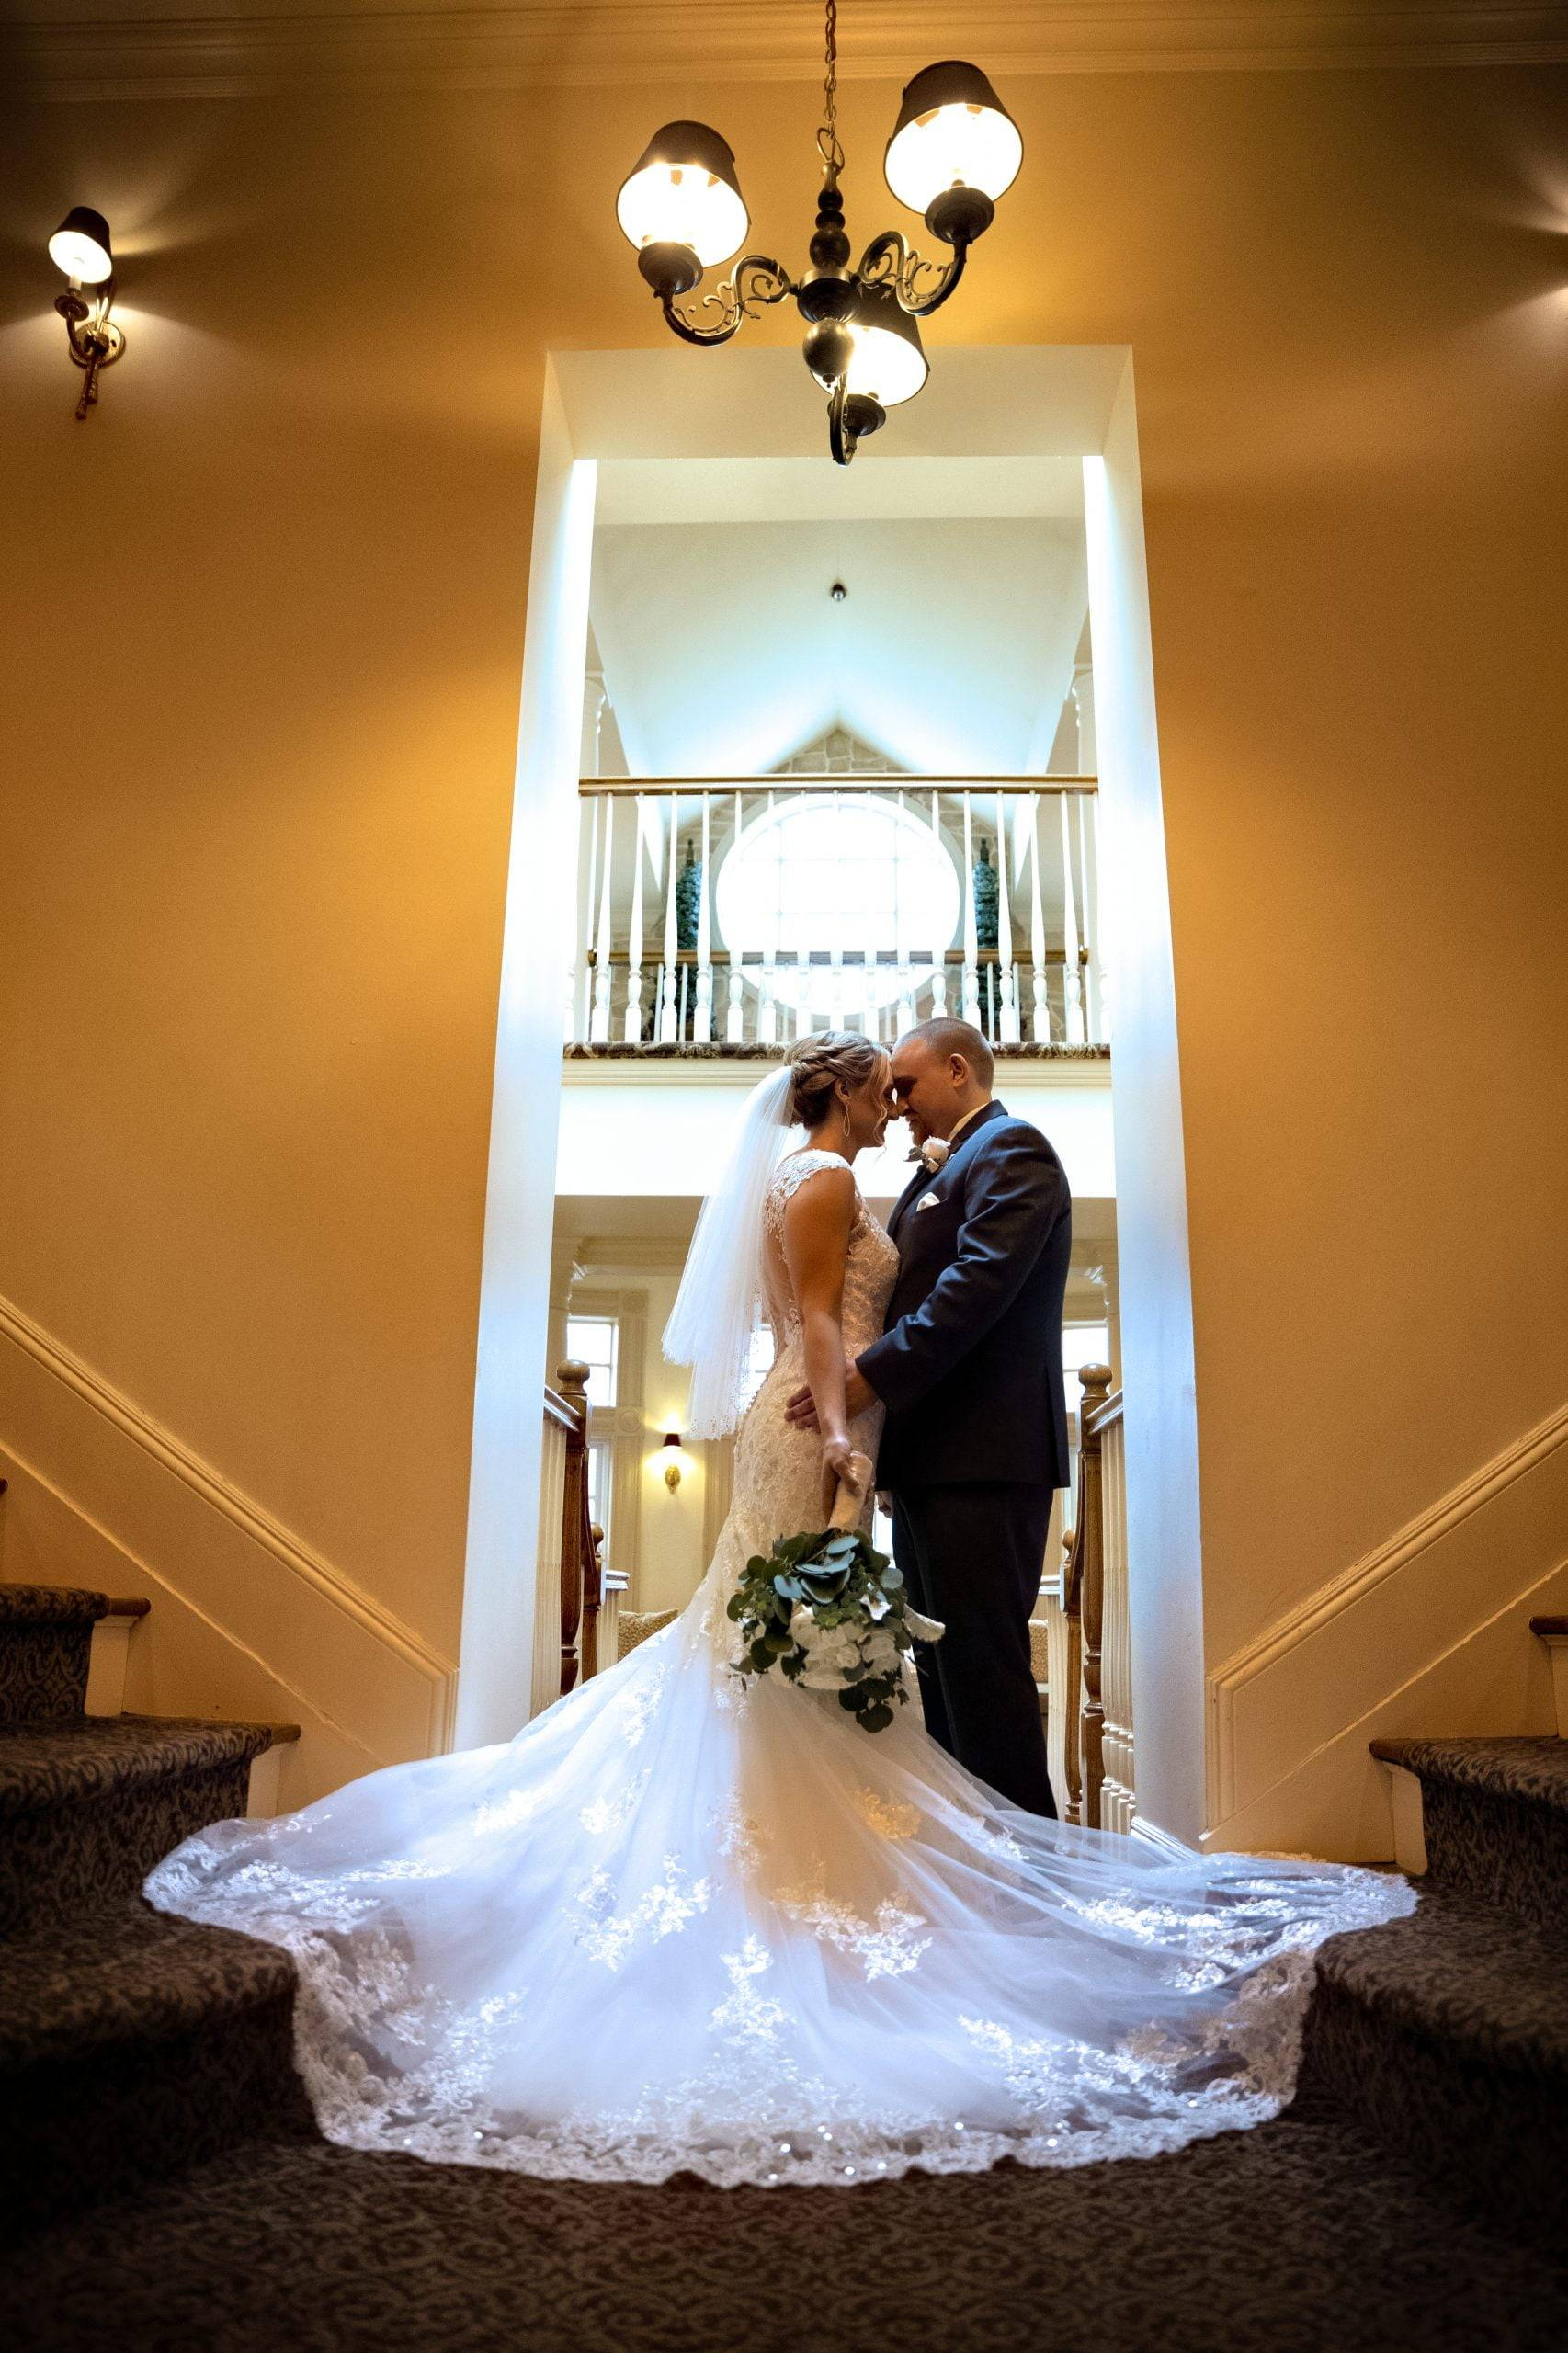 Olde Mill Inn bride and groom by staircases